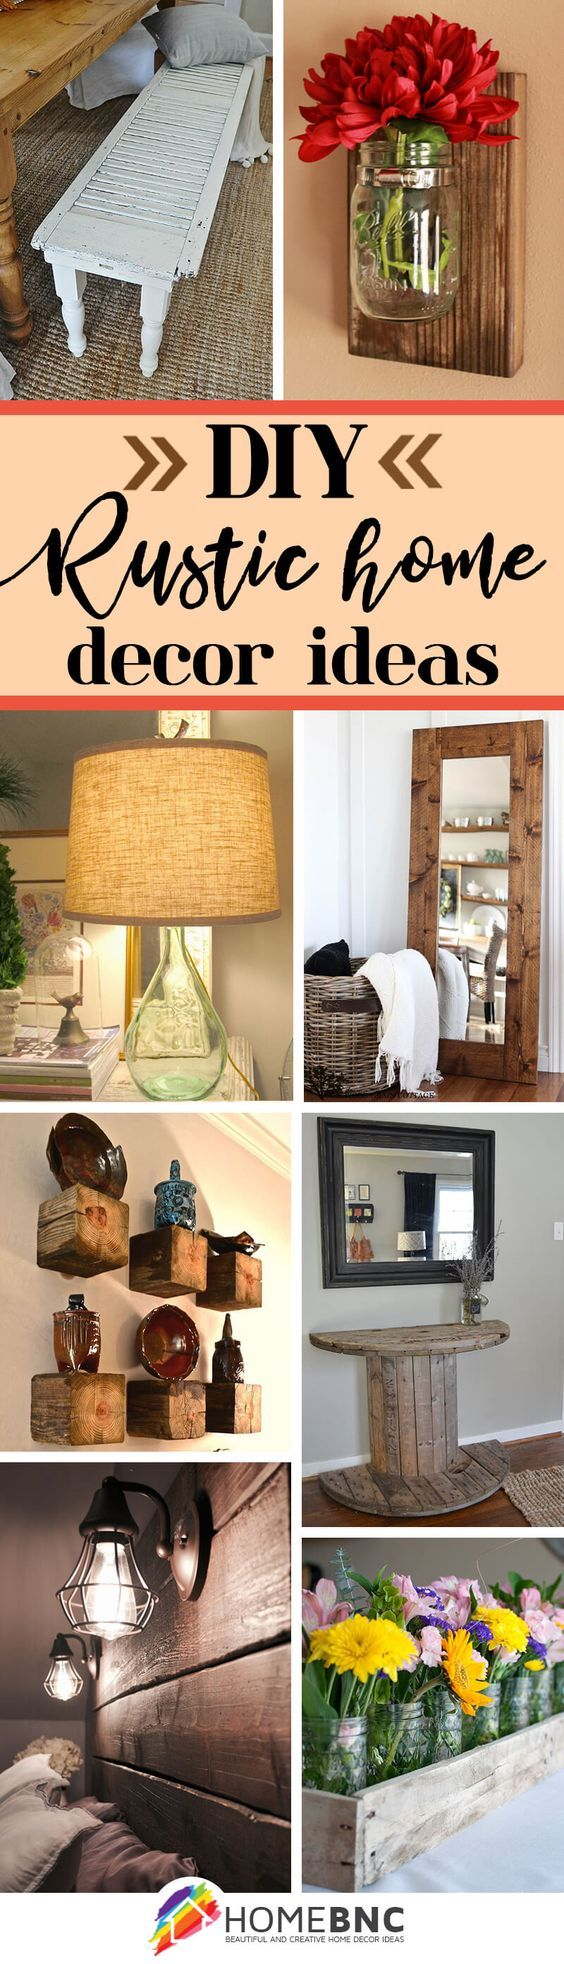 Best 380 Vintage/Rustic/Country Home Decorating Ideas images on ...